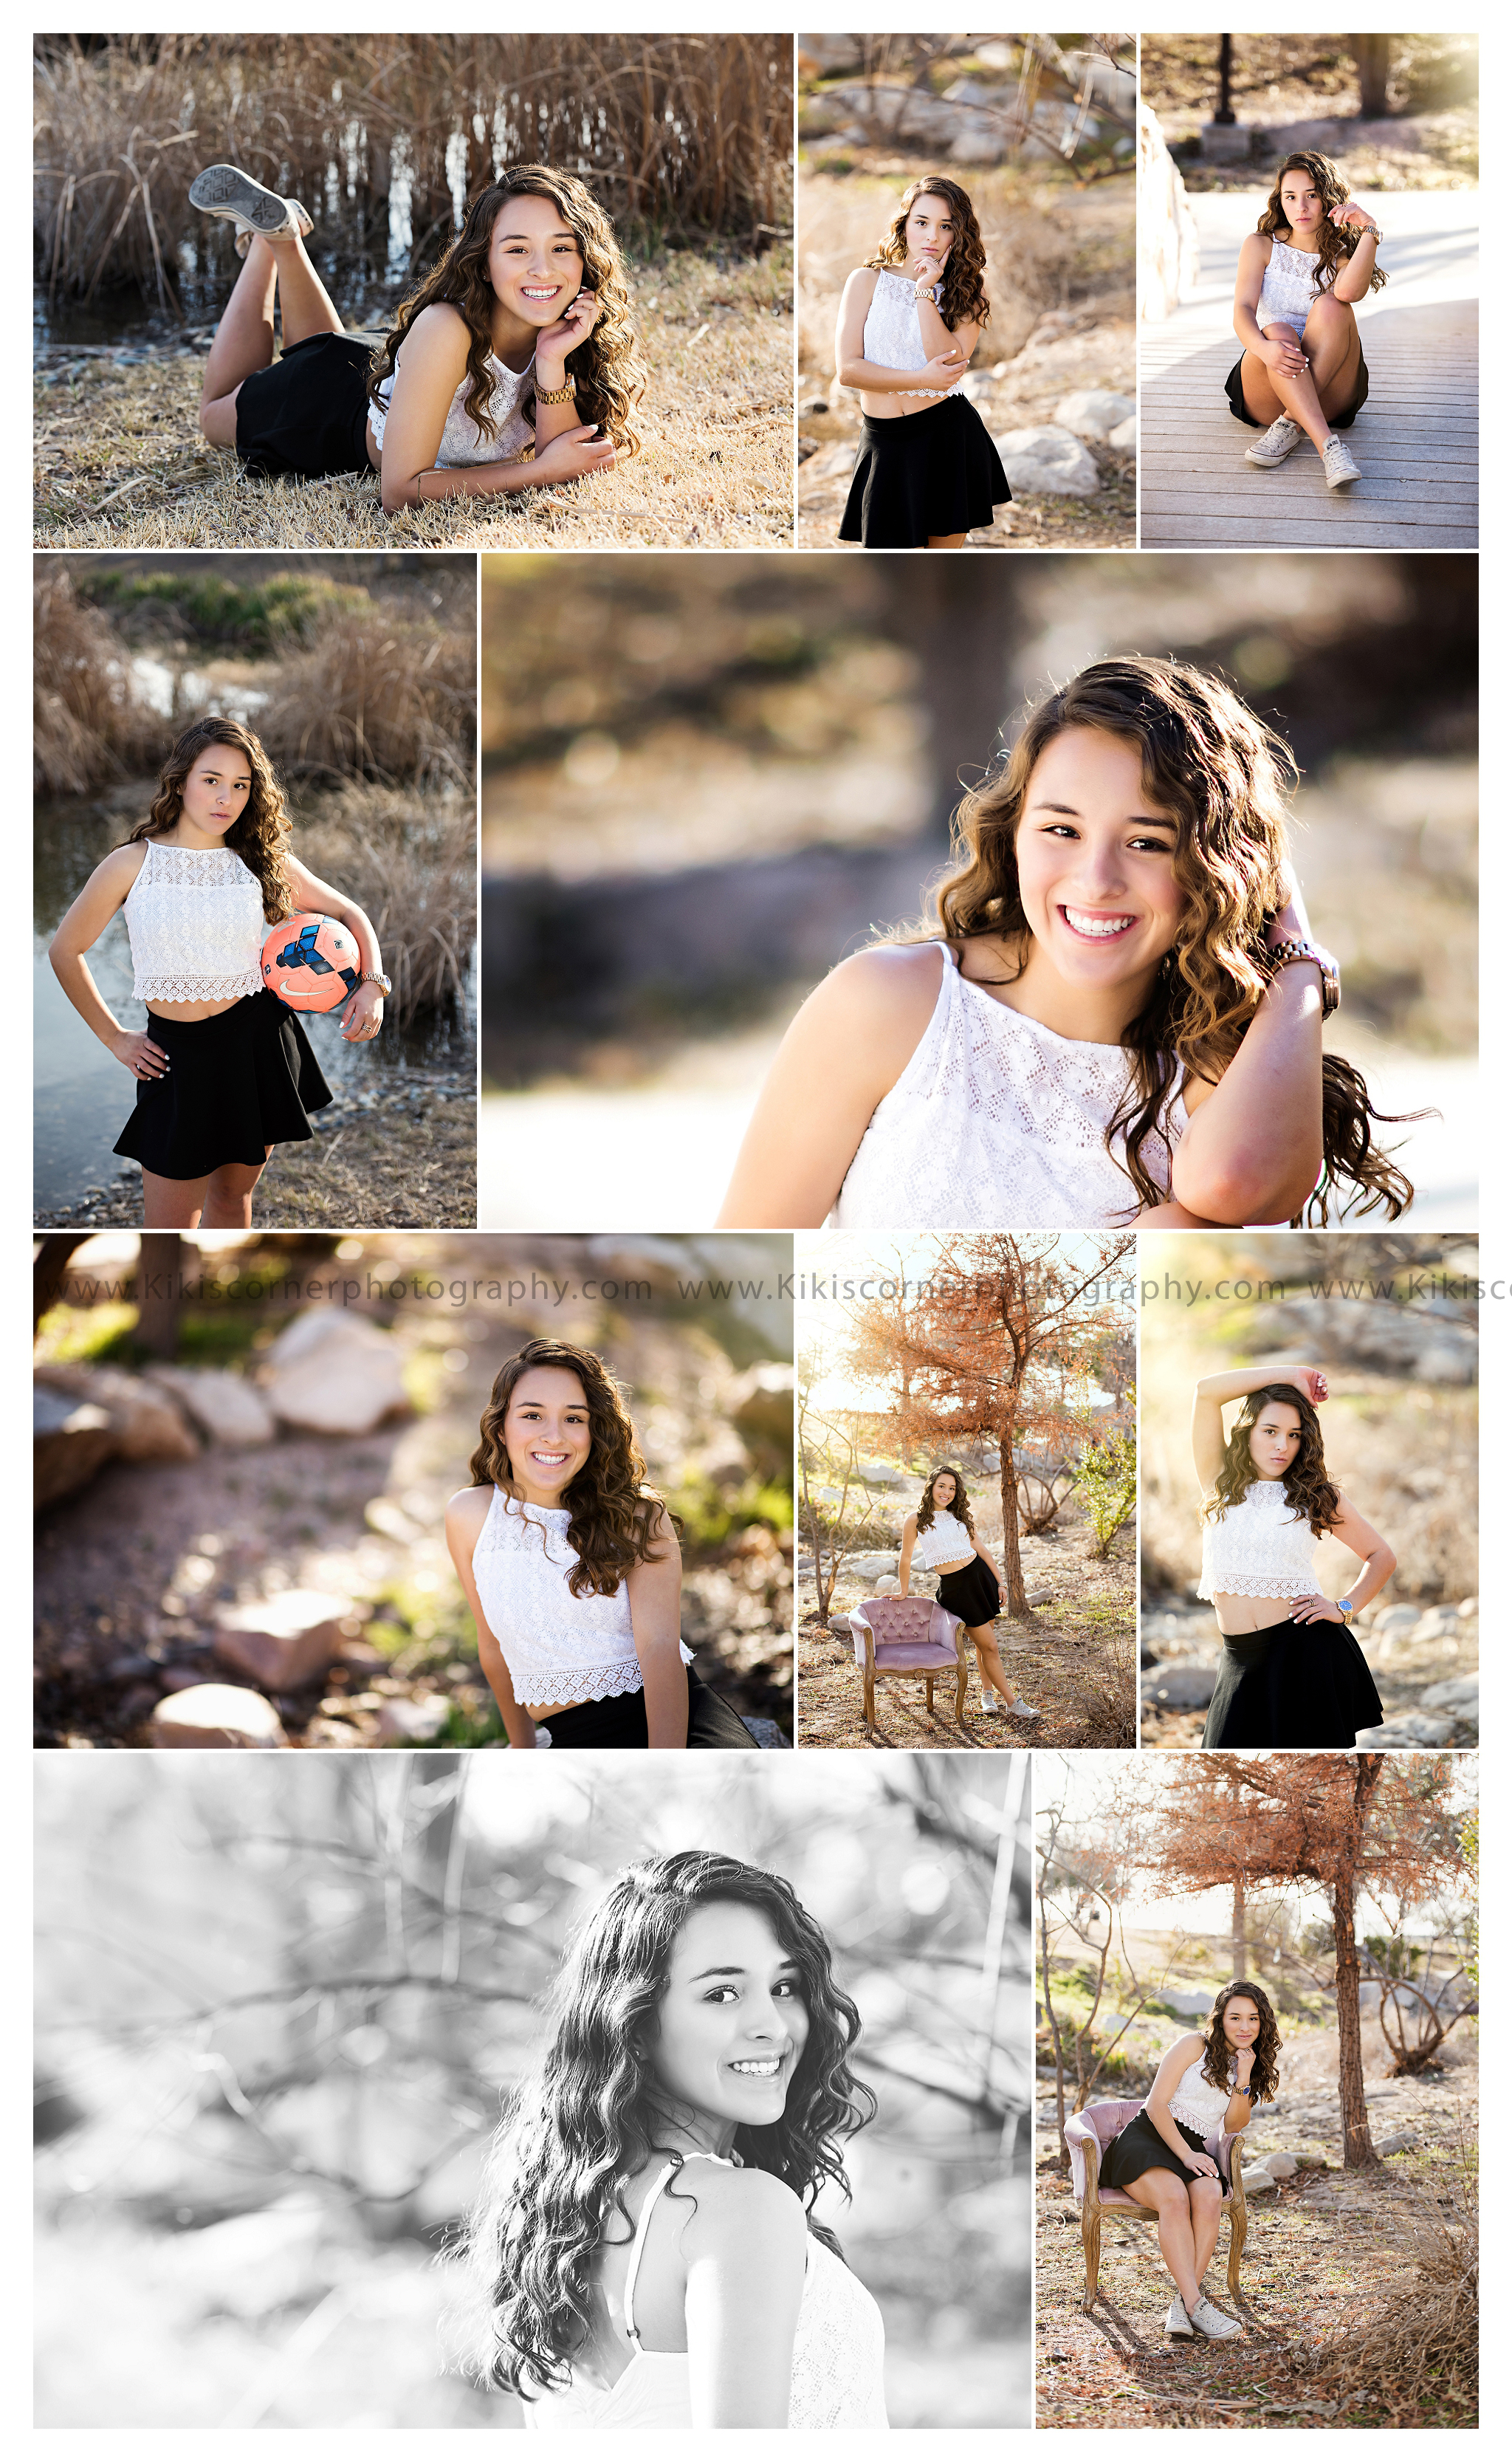 seniorgirlcollagemidlandtexassenior